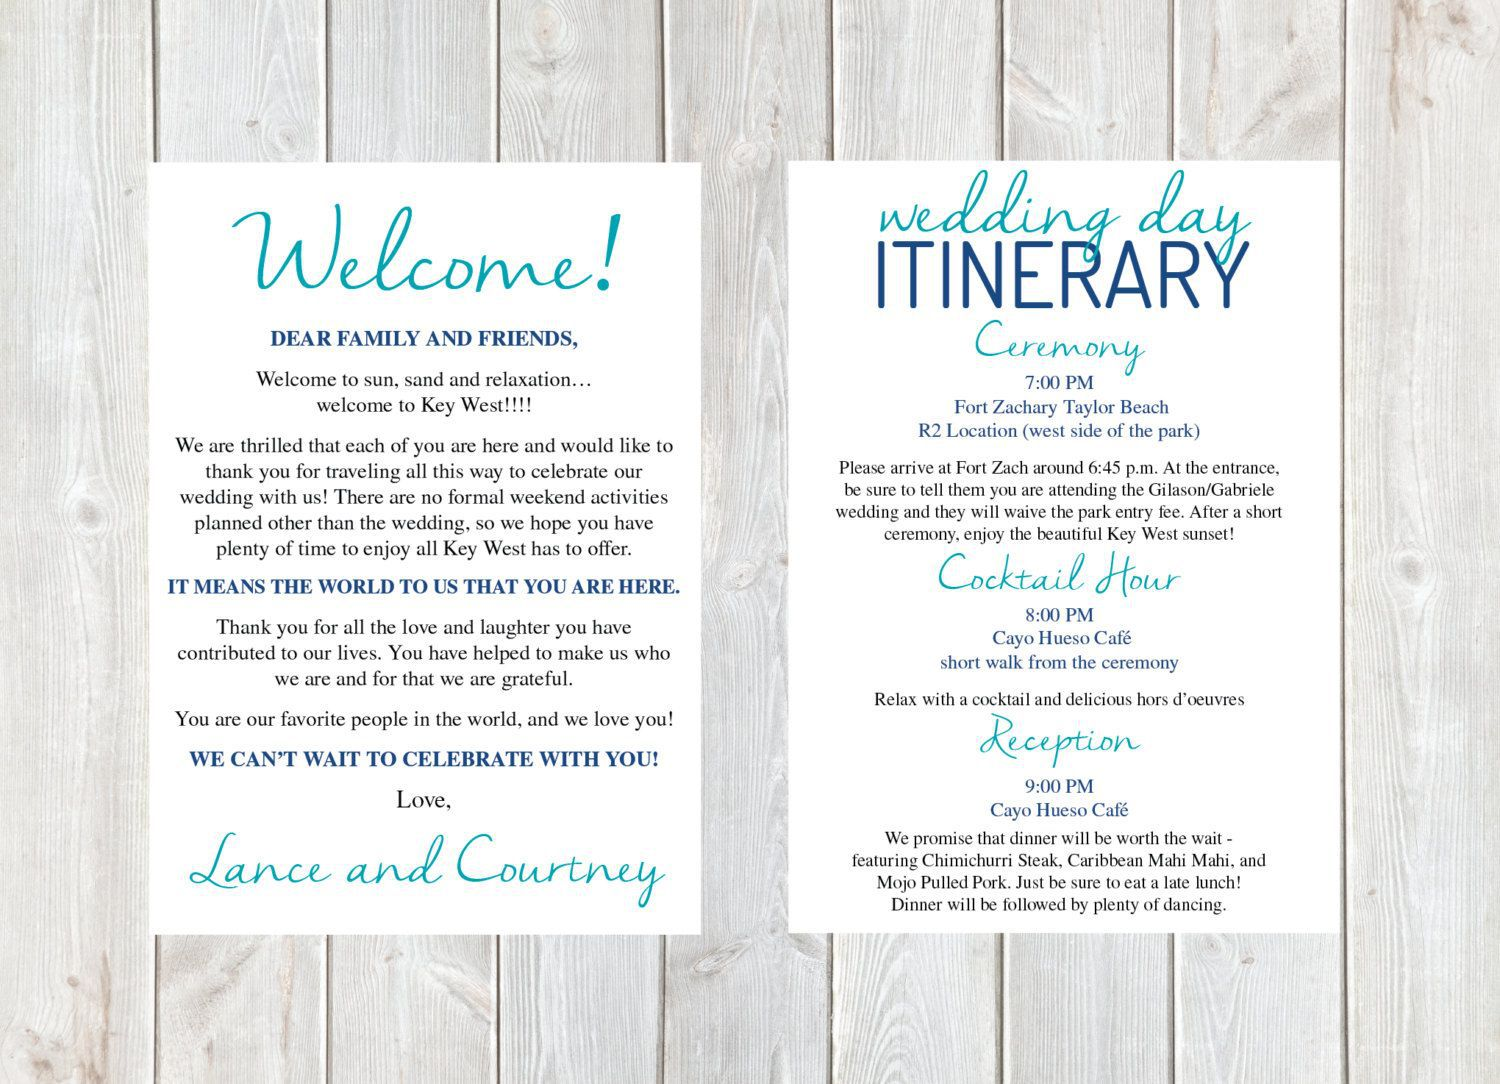 001 Fantastic Destination Wedding Welcome Letter And Itinerary Template High Def Full